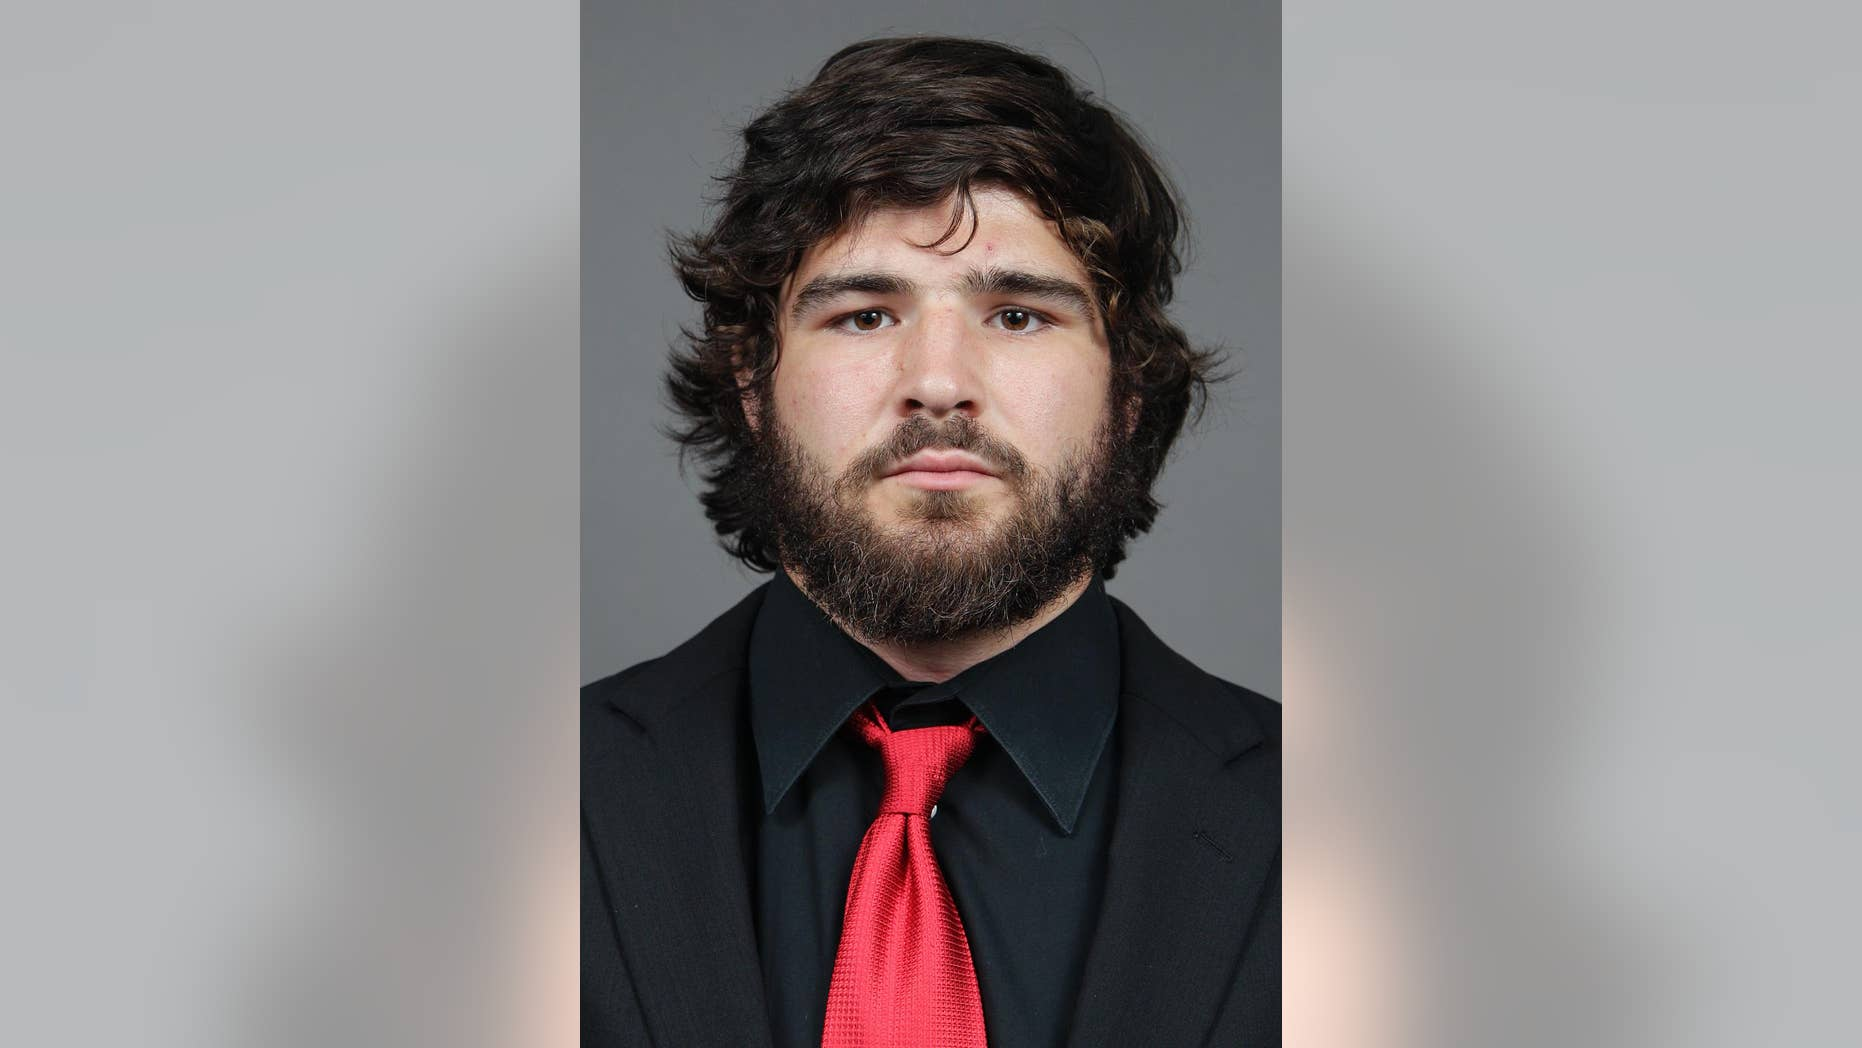 This photo taken on Wednesday, Sept. 11, 2013, and provided by Ohio State university shows college football player Kosta Karageorge in Columbus, Ohio.  The mother of a missing Ohio State football player has told police he texted her about his prior concussions the morning he disappeared. A missing-person report filed with Columbus police Wednesday evening, Nov. 26, 2014, says Karageorge told his mother he was sorry if he was an embarrassment but concussions had his head messed up. The 6-foot-5 senior missed practice Wednesday and Thursday and has not been heard from. (AP Photo/Ohio State University, Jay LaPrete)